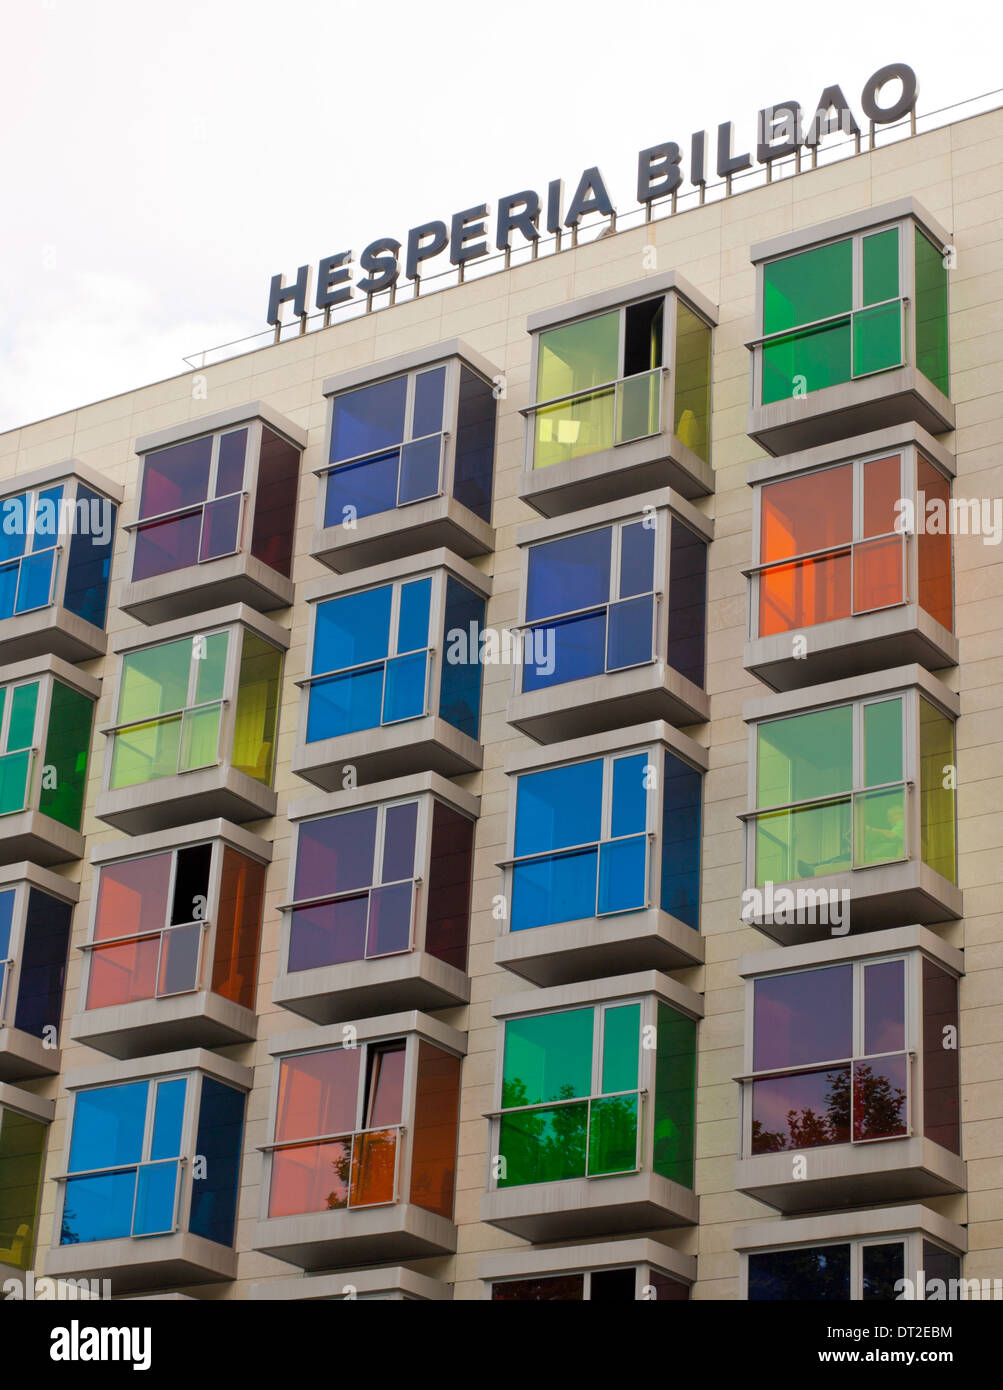 colourful windows are the trademark of the hotel hesperia bilbao in stock photo royalty free. Black Bedroom Furniture Sets. Home Design Ideas